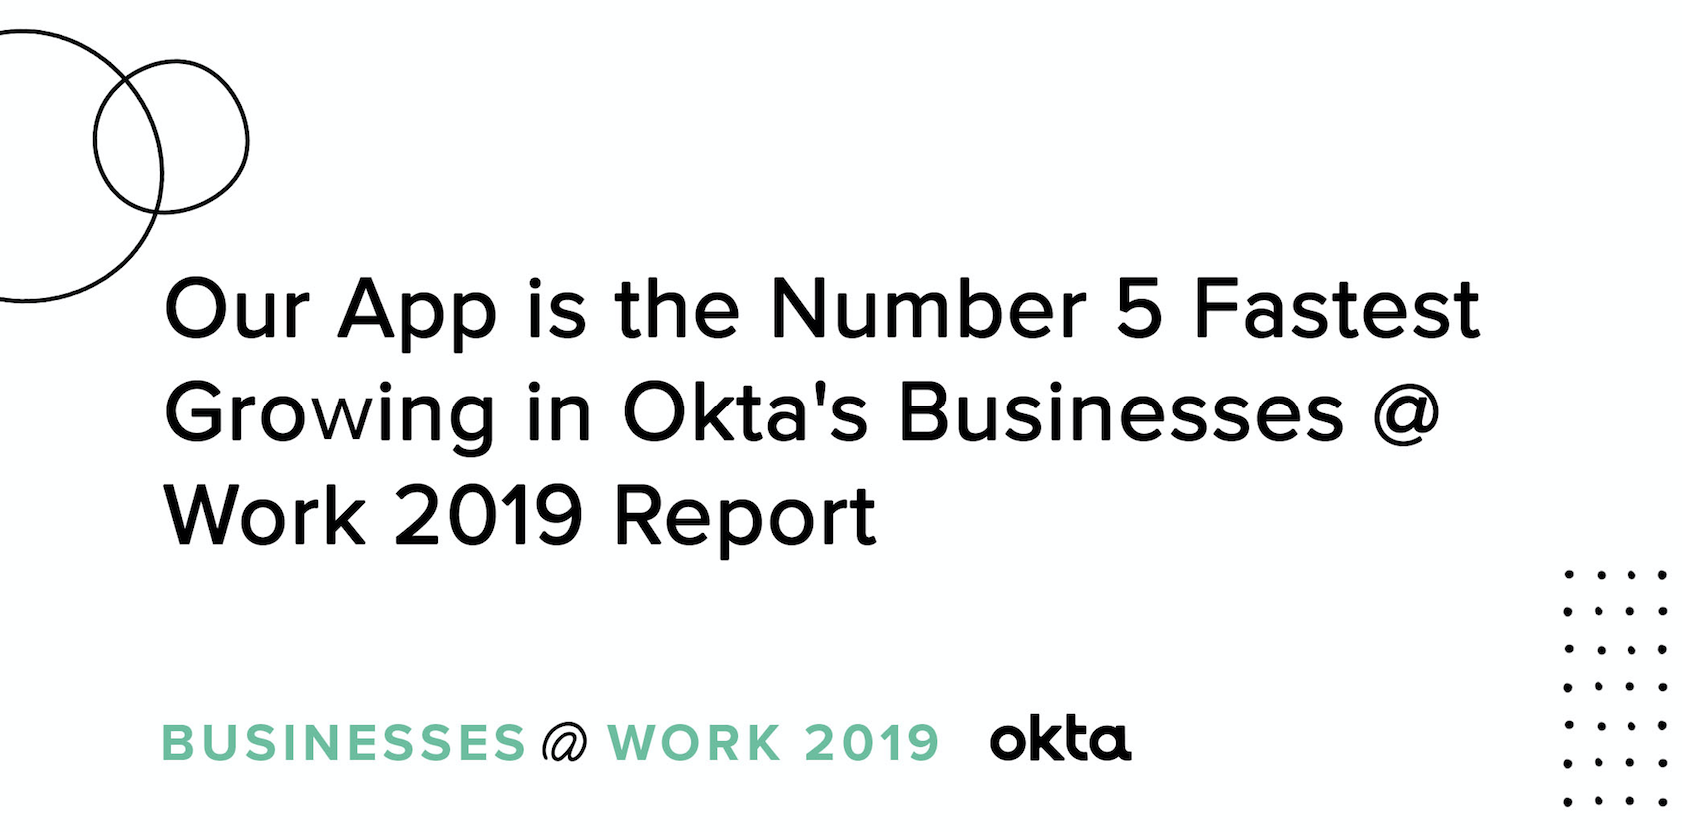 Zoom is the Only Fastest Growing & Most Popular App - Okta